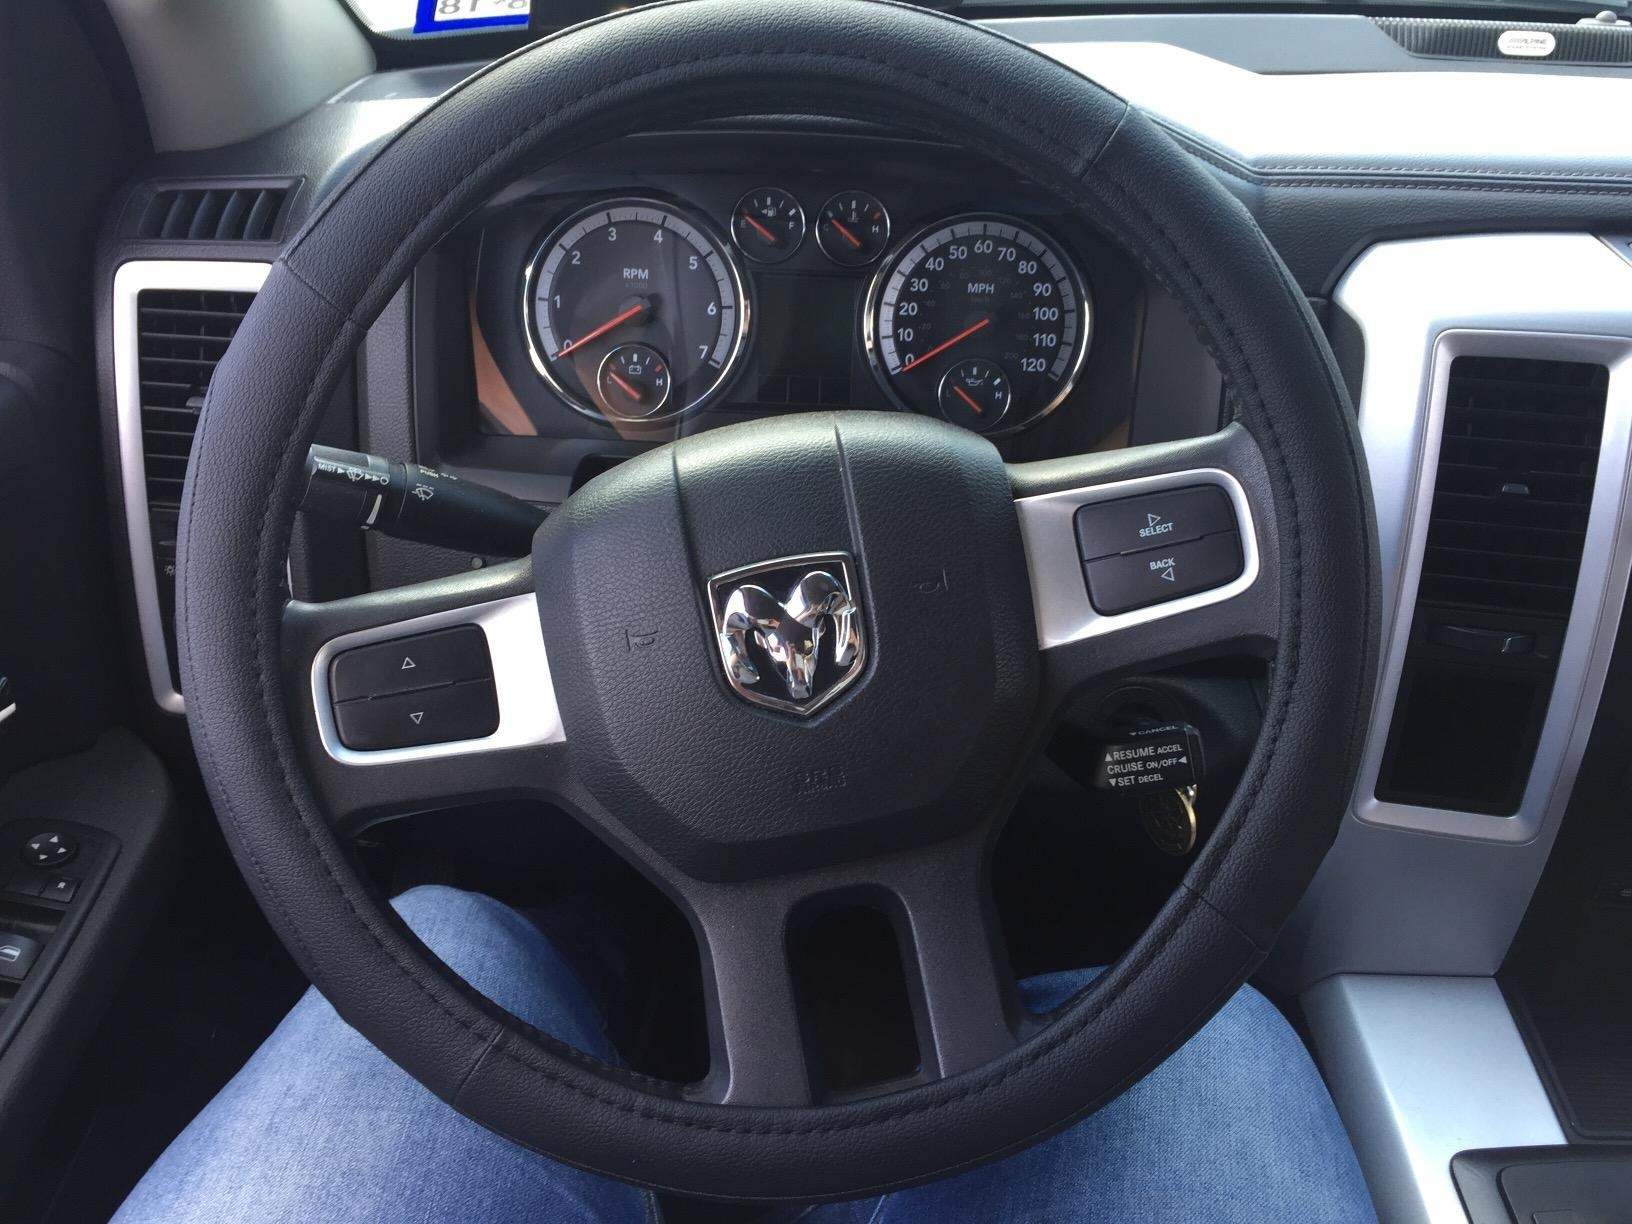 Reviewer photo of the steering wheel cover